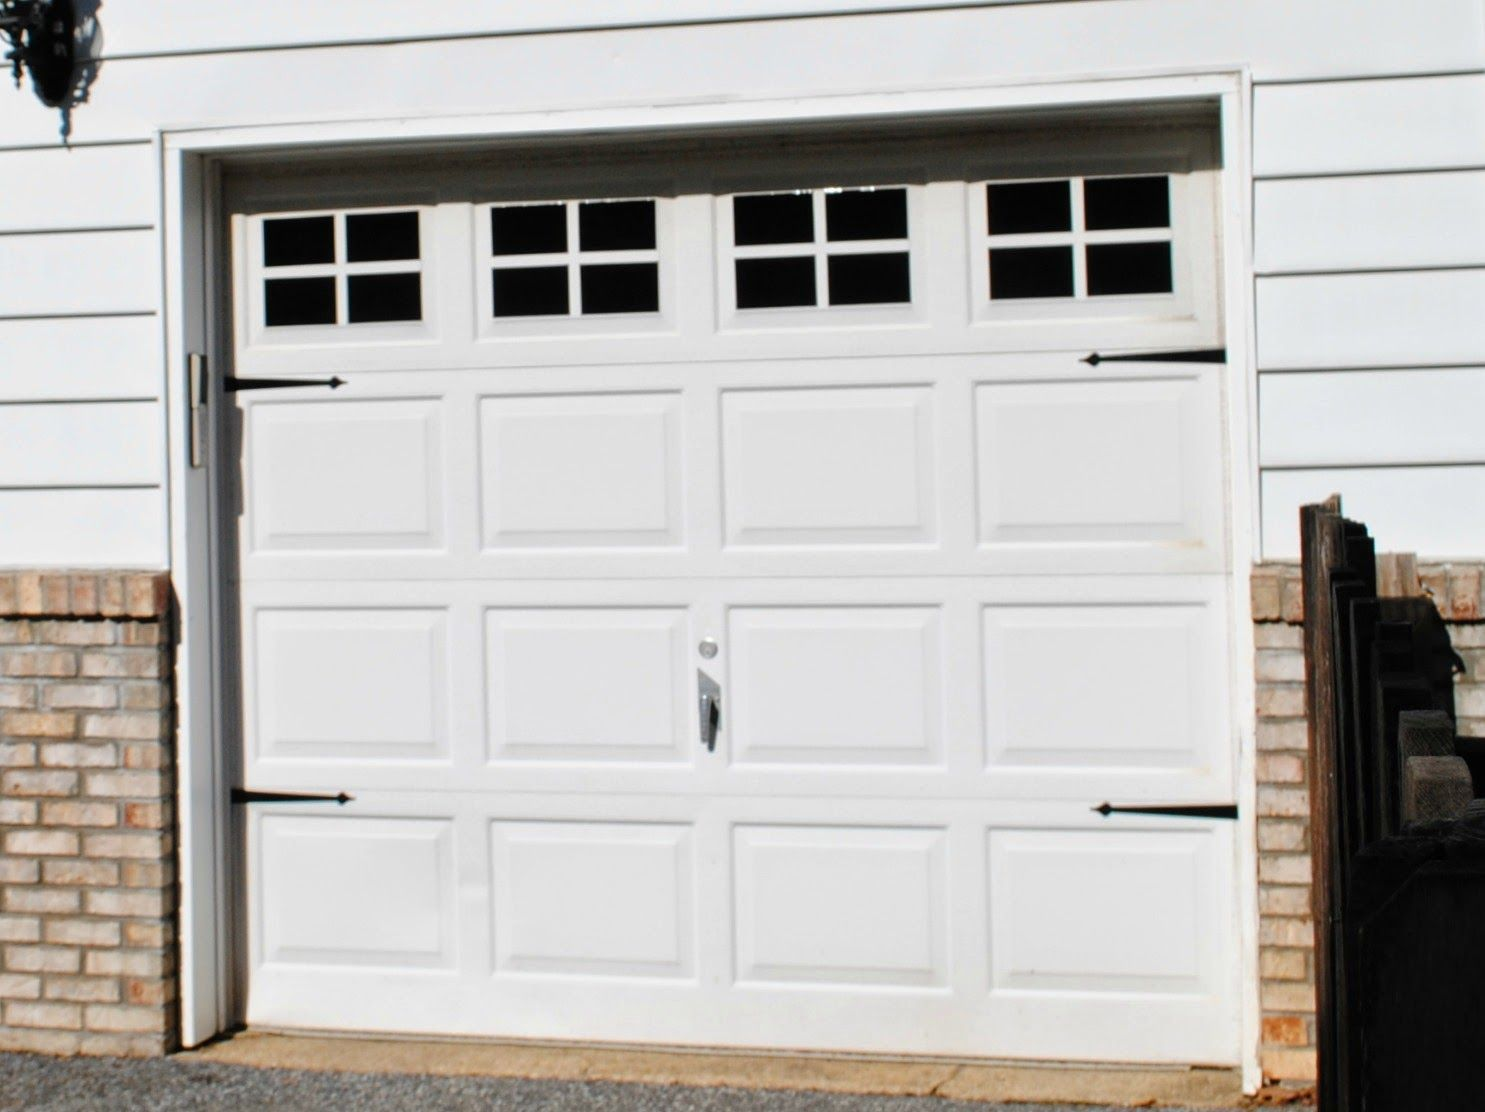 coverings panel door pilotproject garage org vinyl timsgaragedoor jackskellington traditional doors raised